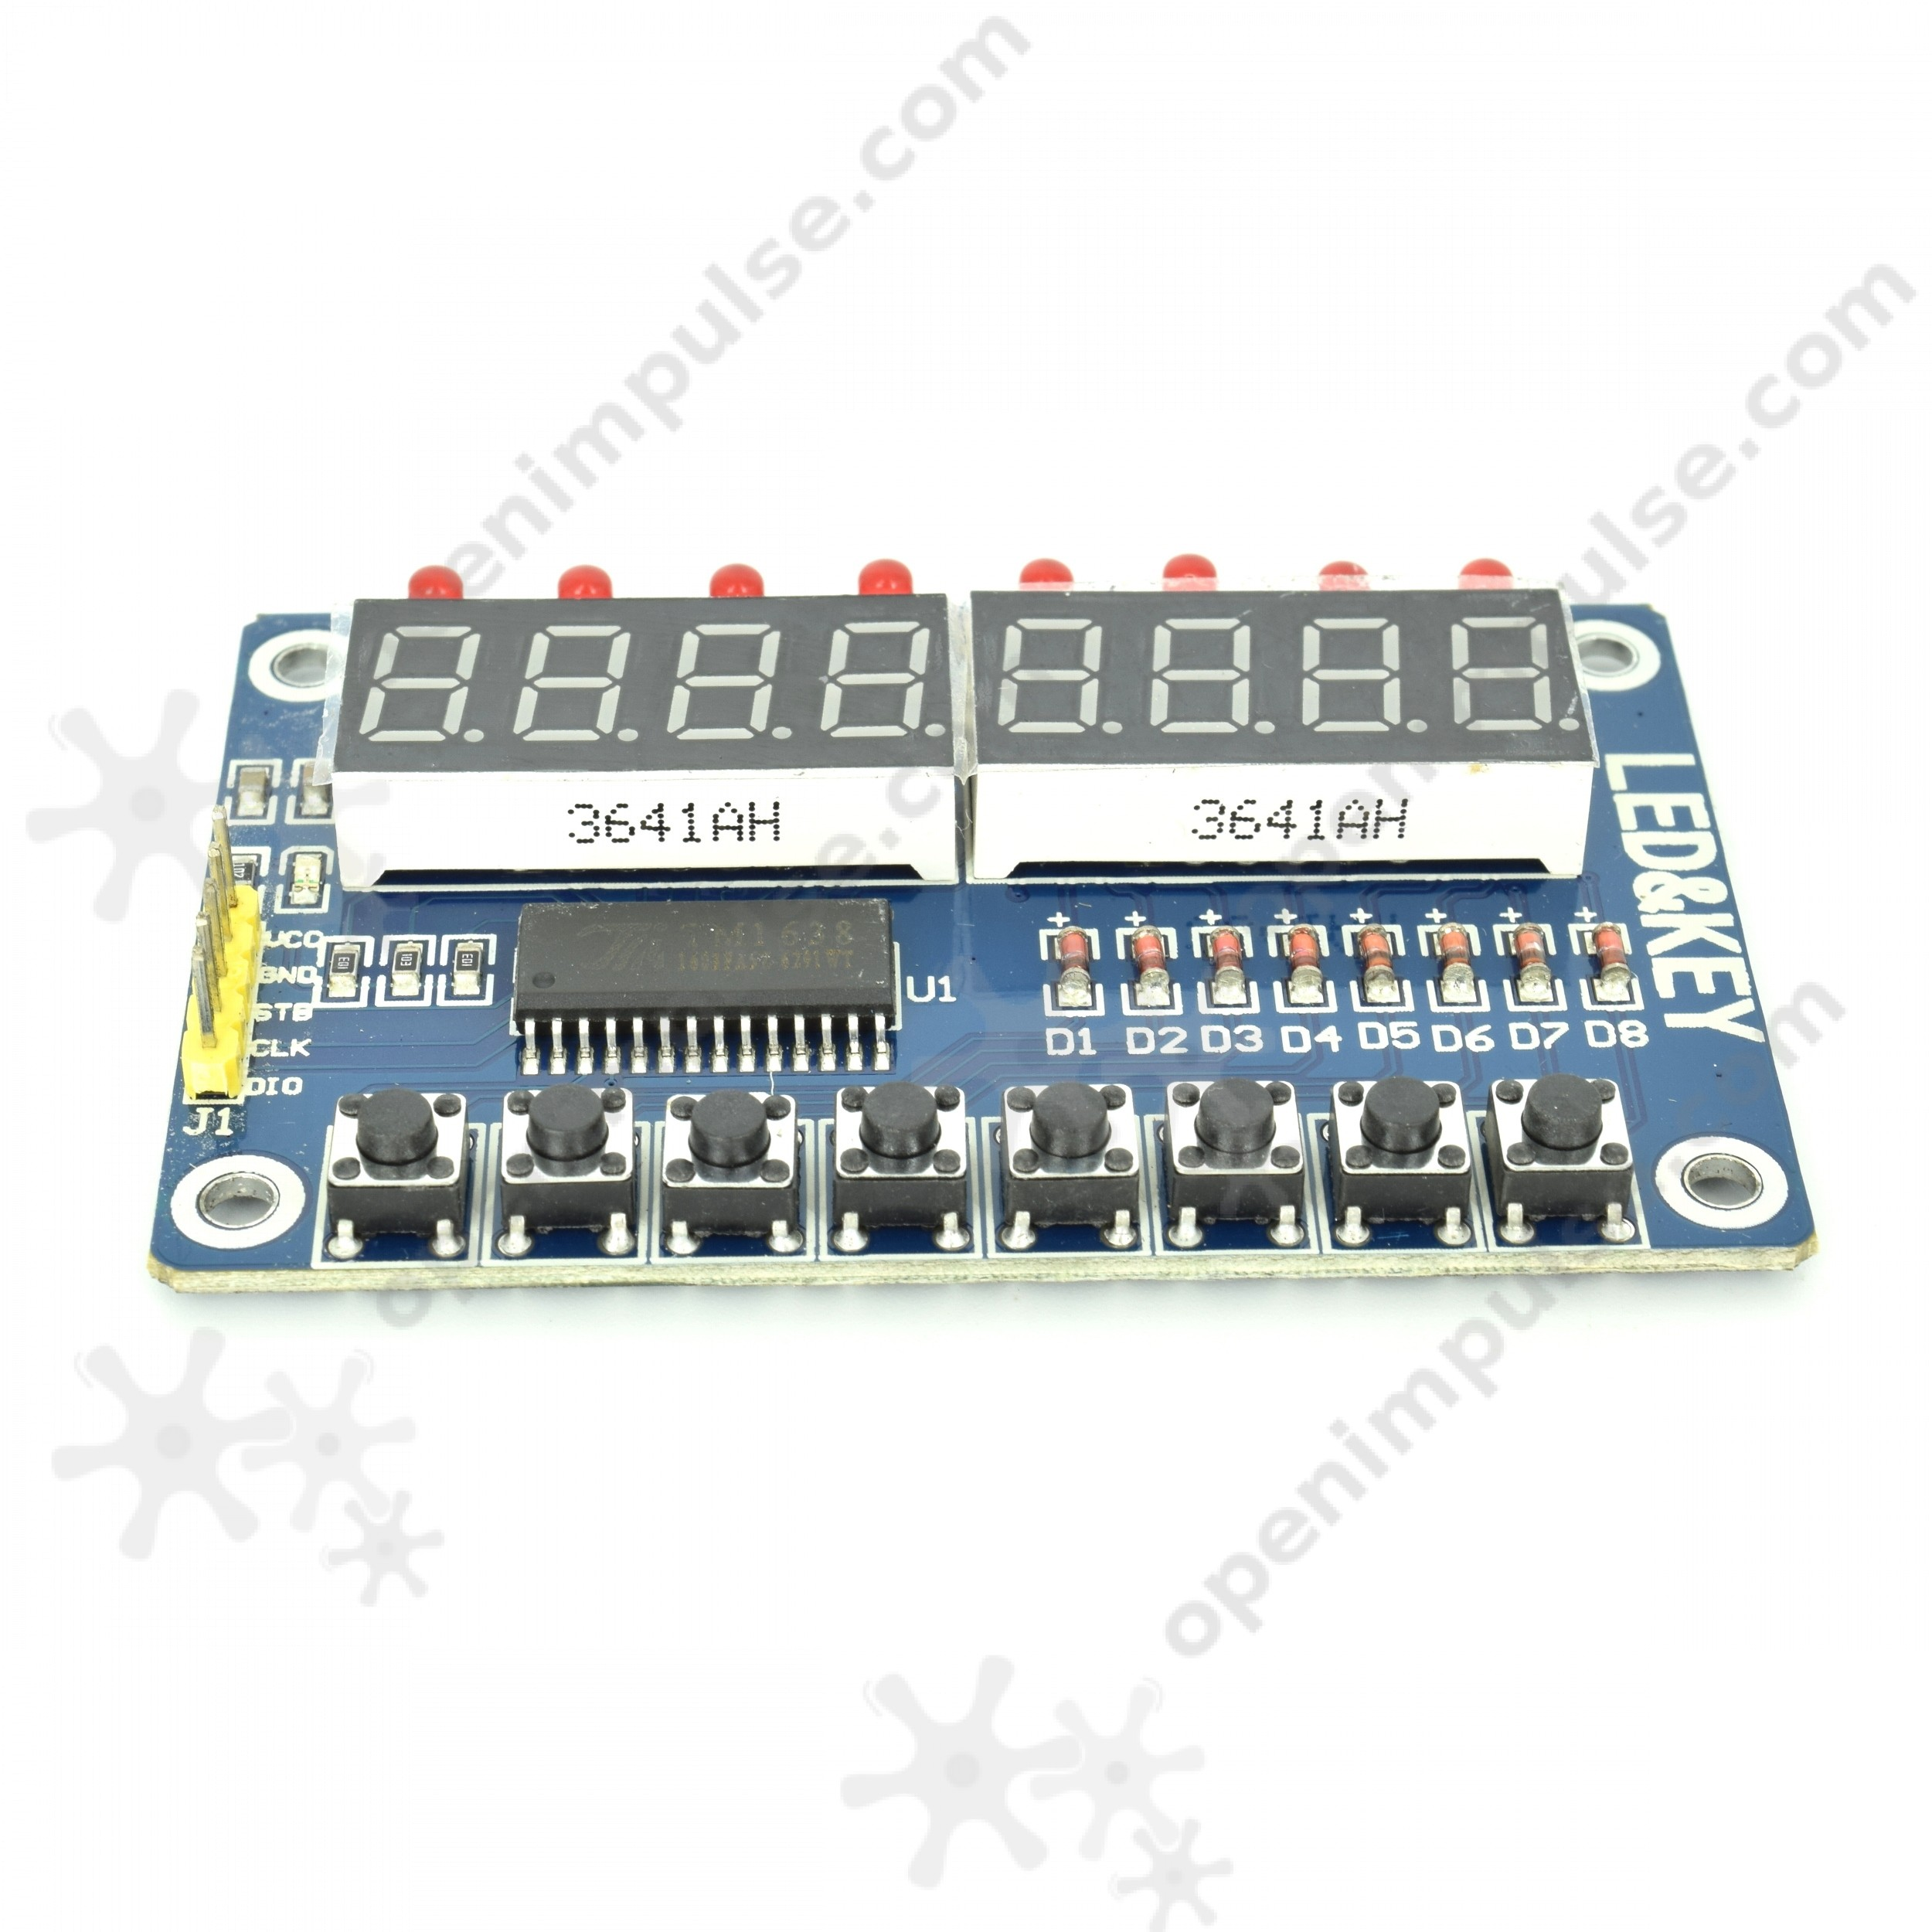 TM1638 8 Digit LED Display with Buttons | Open ImpulseOpen Impulse